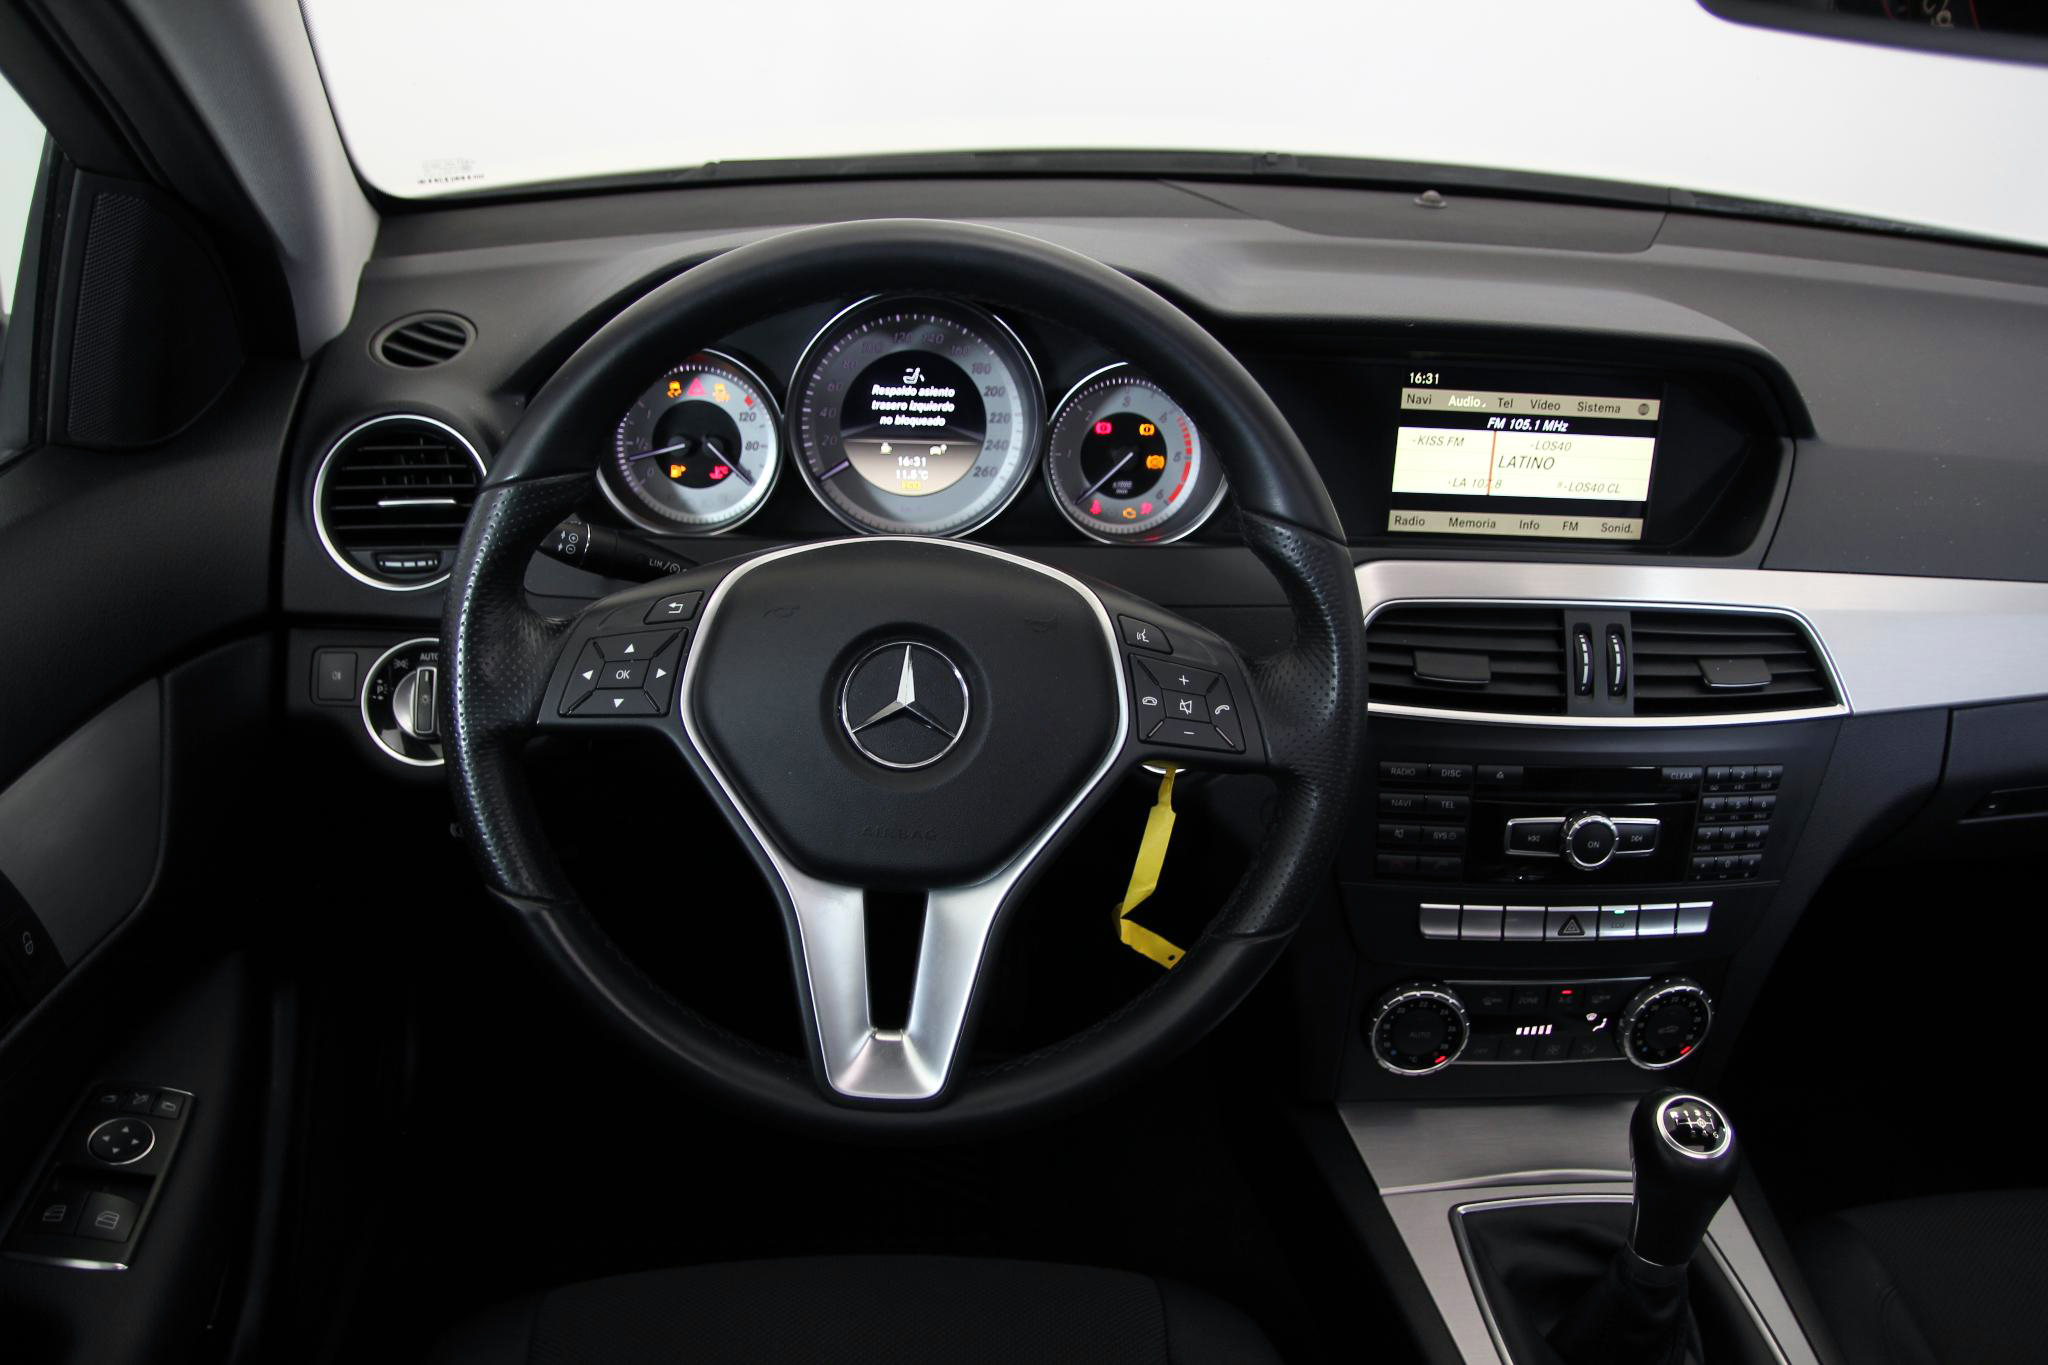 Mercedes-Benz Clase C CLASE C COUPE 220 CDI BLUE EFFICIENCY imagen 11